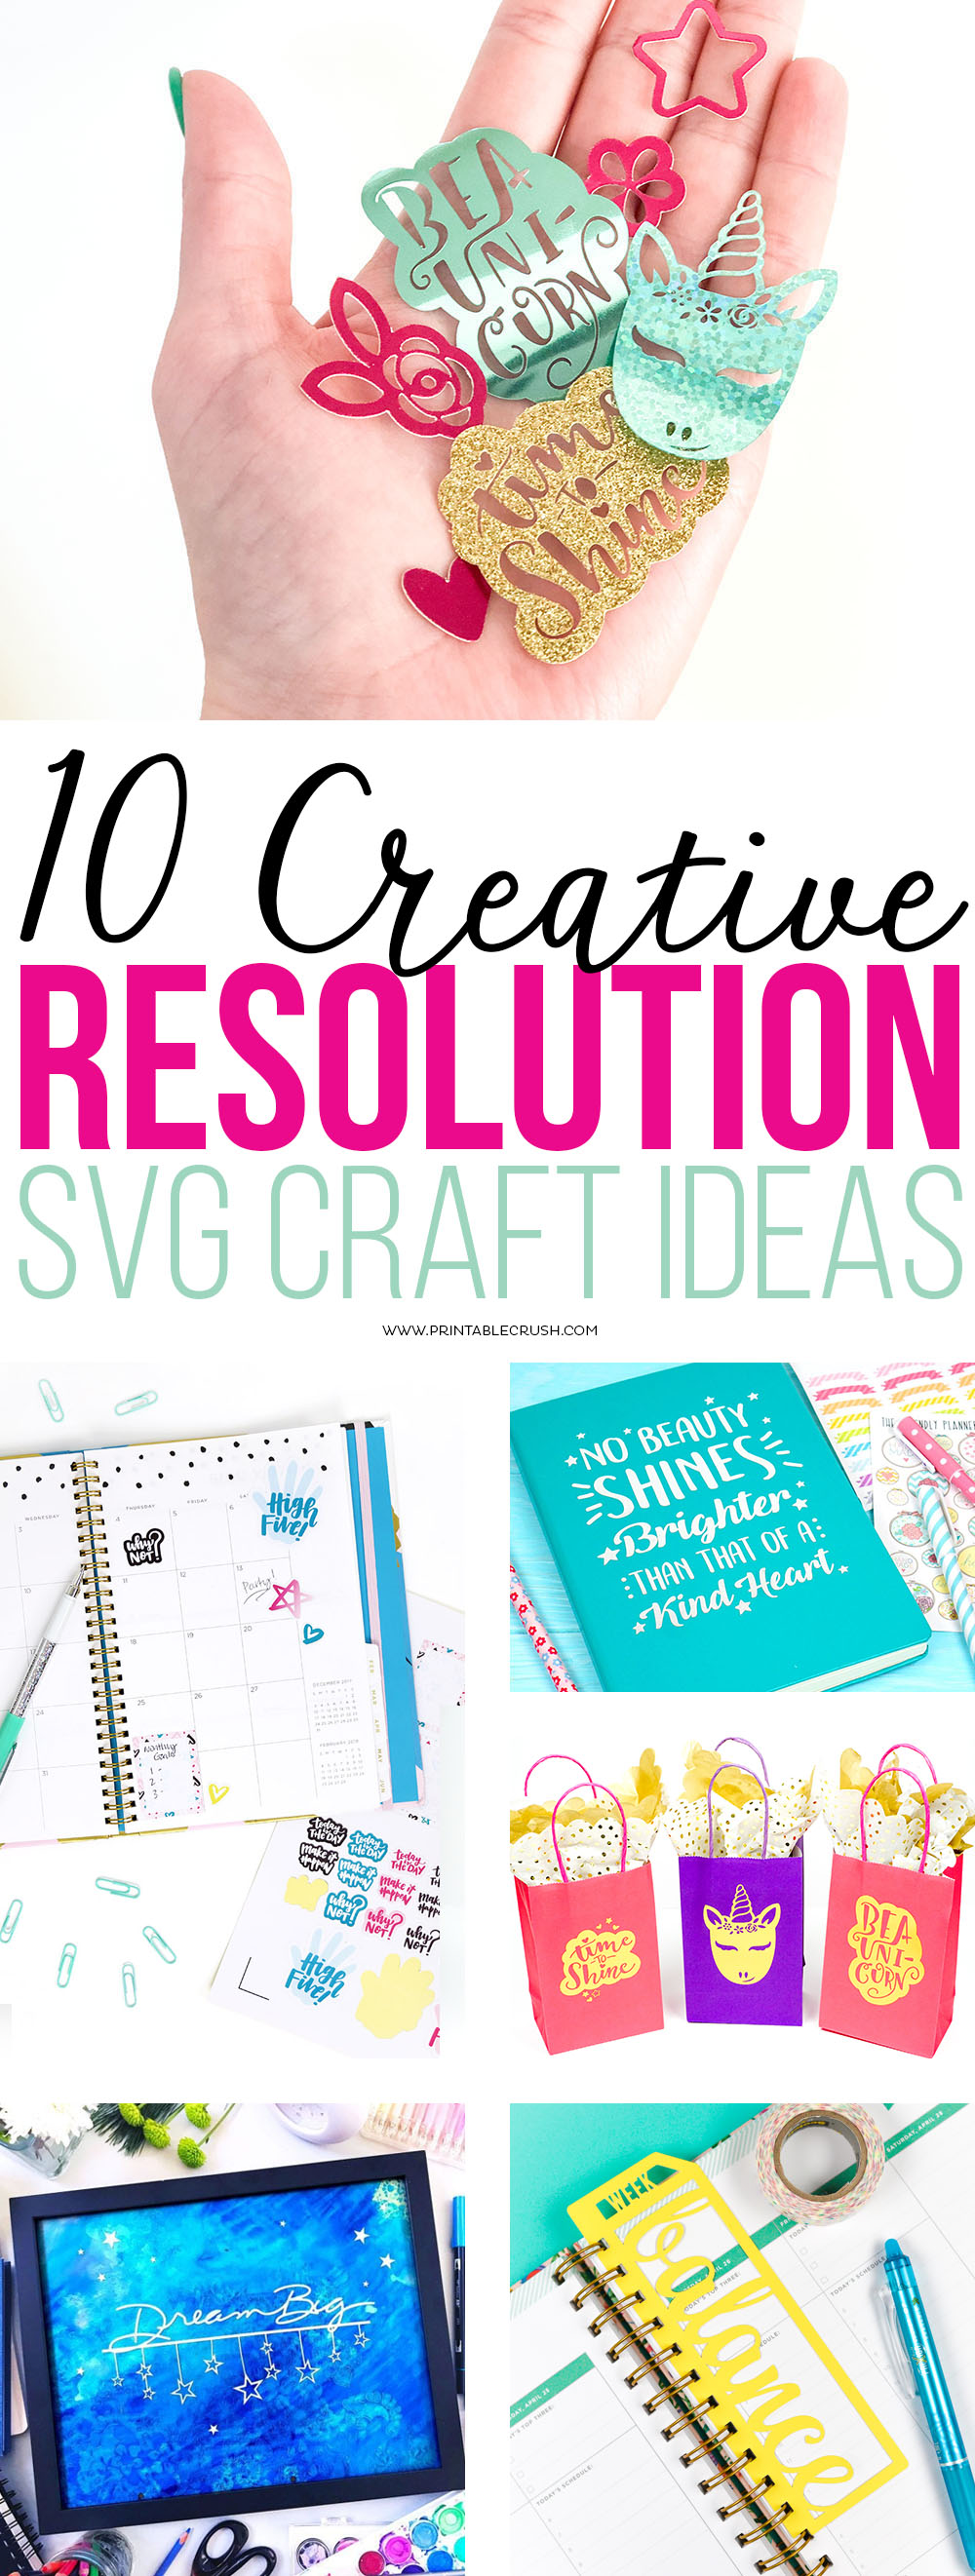 Get inspiration for your Resolutions with these 10 Creative Resolution SVG Craft Ideas! From journaling to party ideas, we've got you covered!